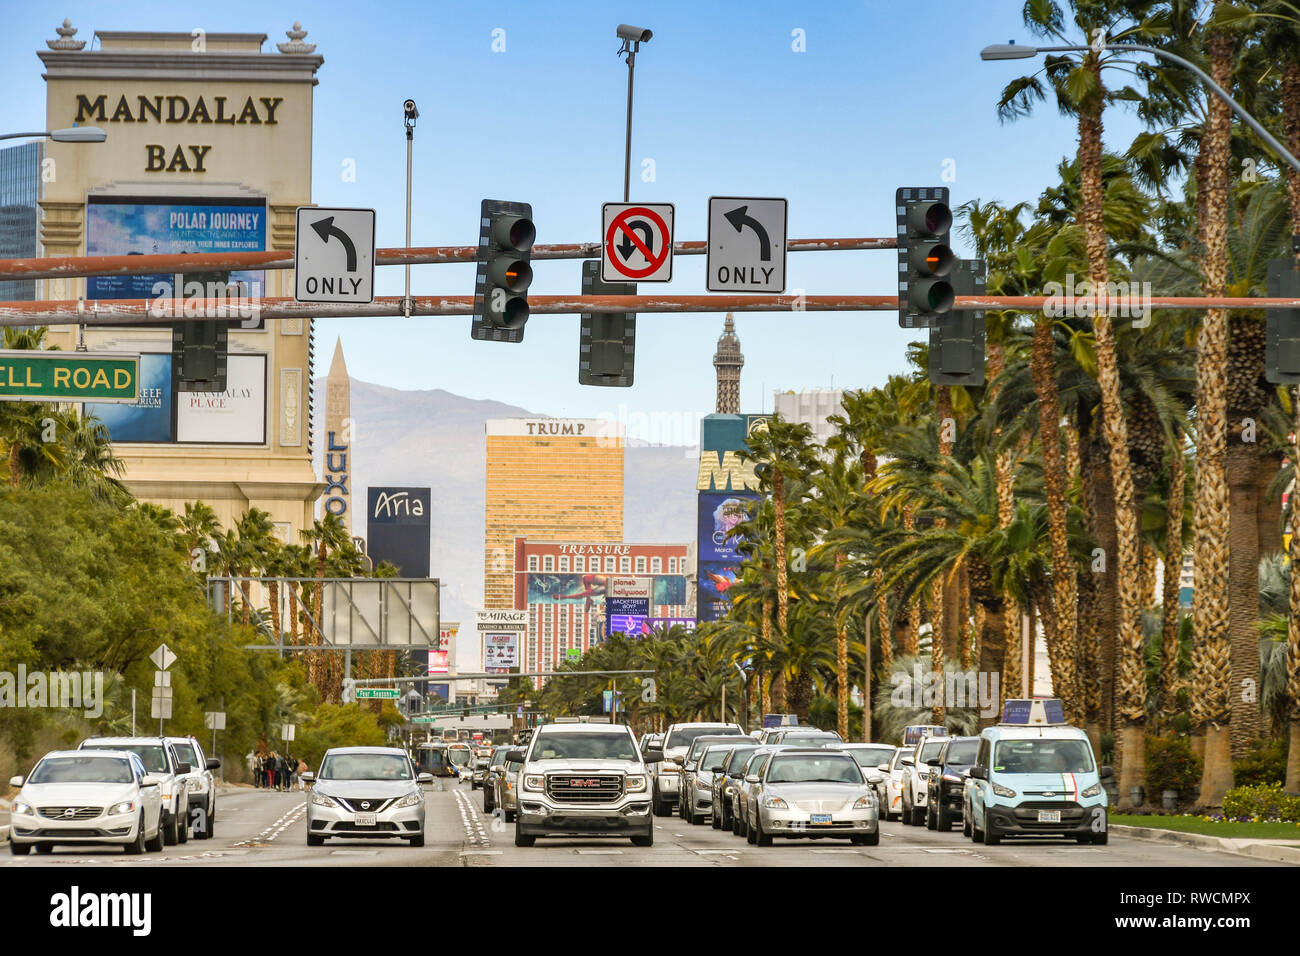 LAS VEGAS, NEVADA, USA - FEBRUARY 2019: Traffic southbound on Las Vegas Boulevard stopped at traffic signals at an intersection. - Stock Image